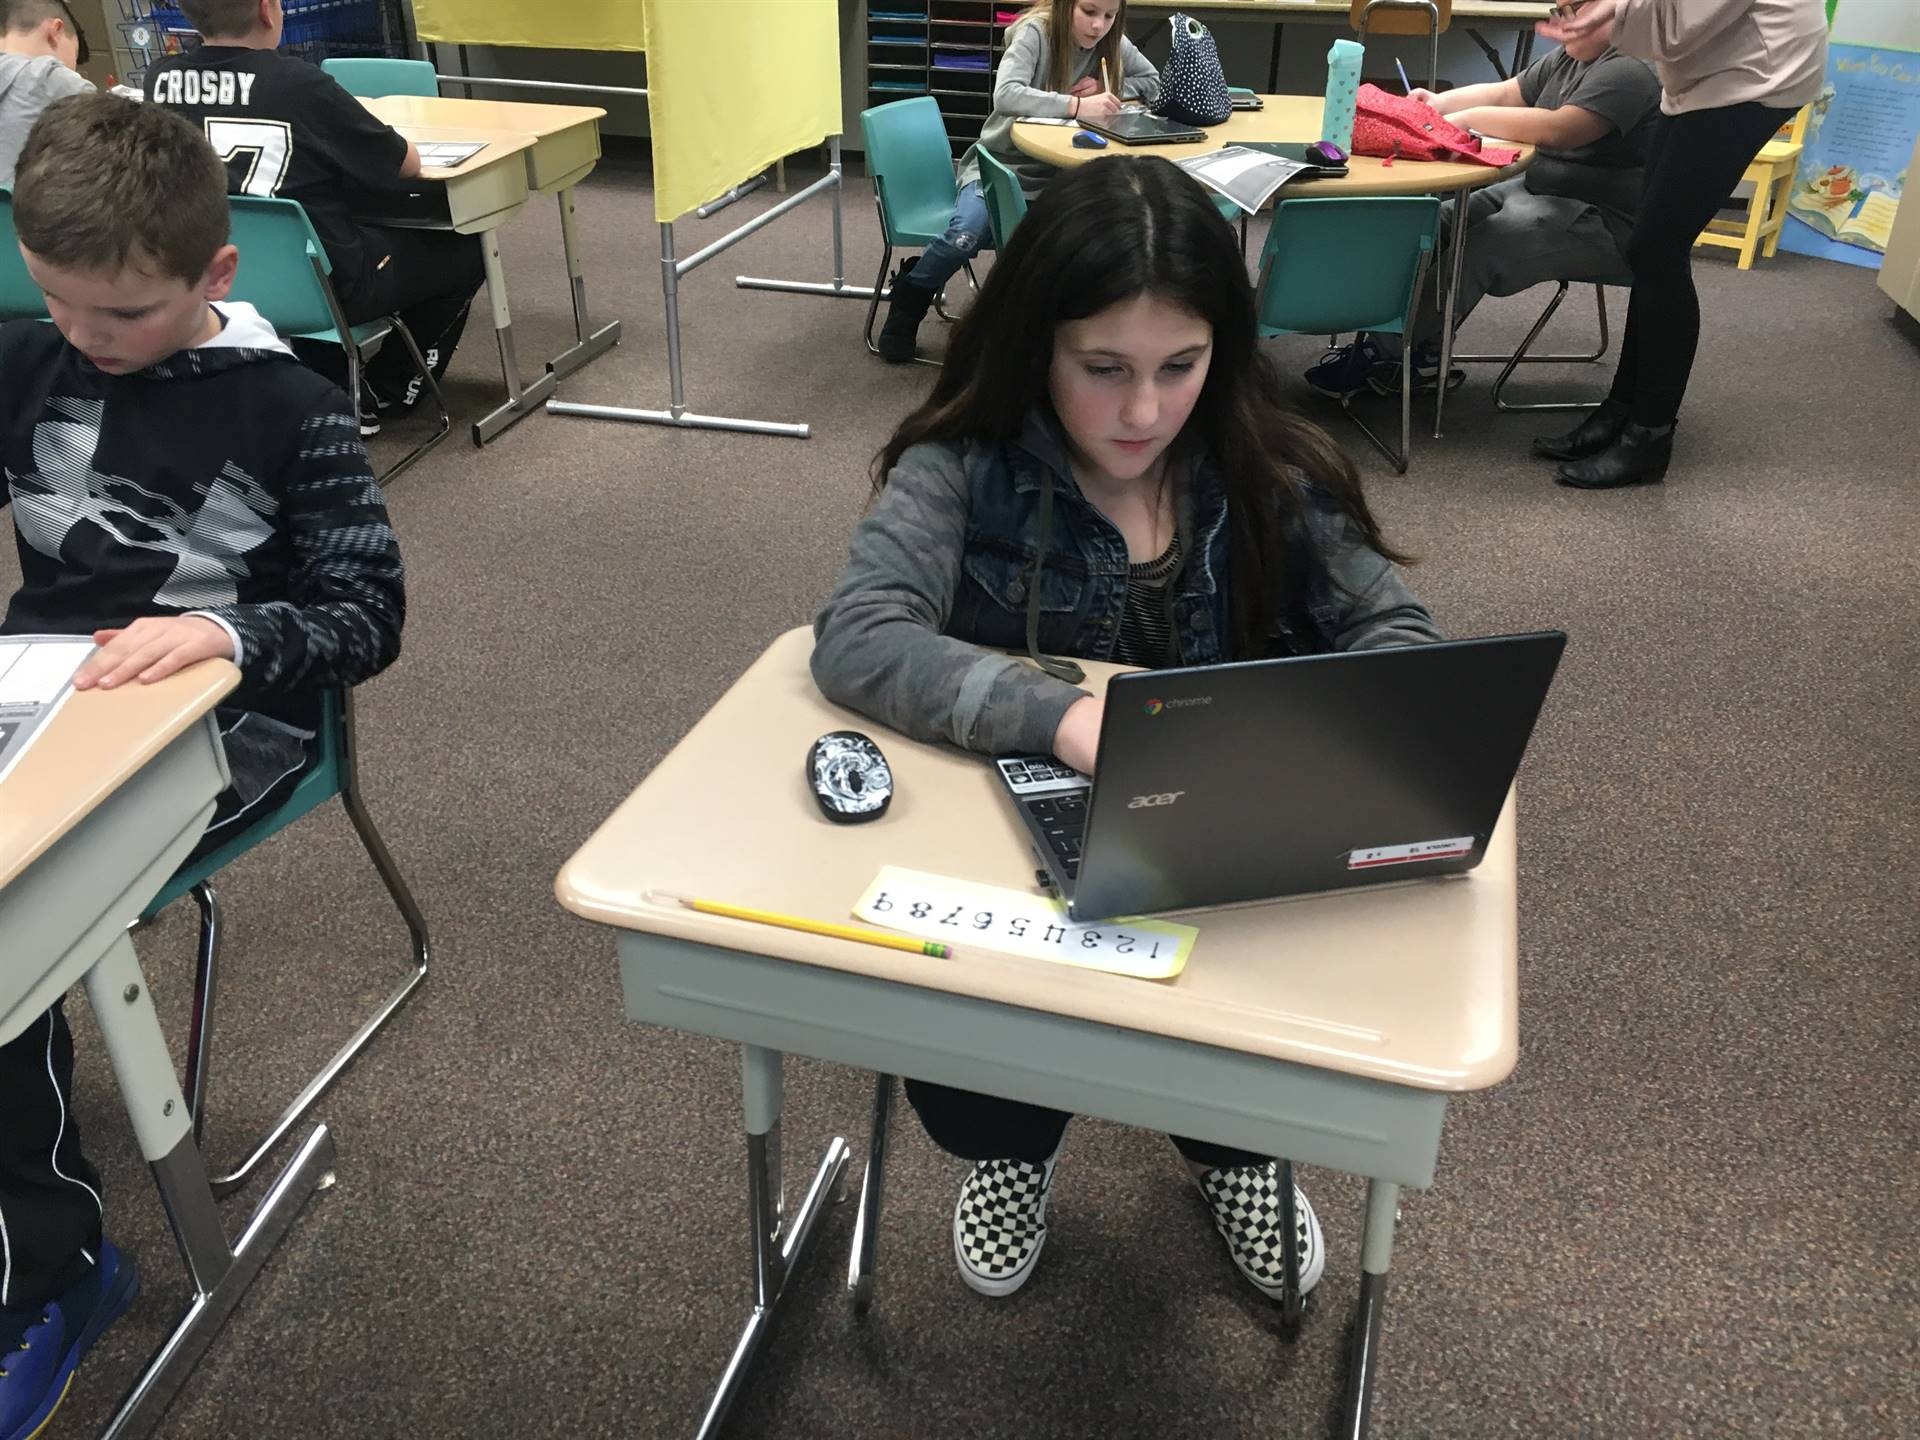 Student working on a Chromebook